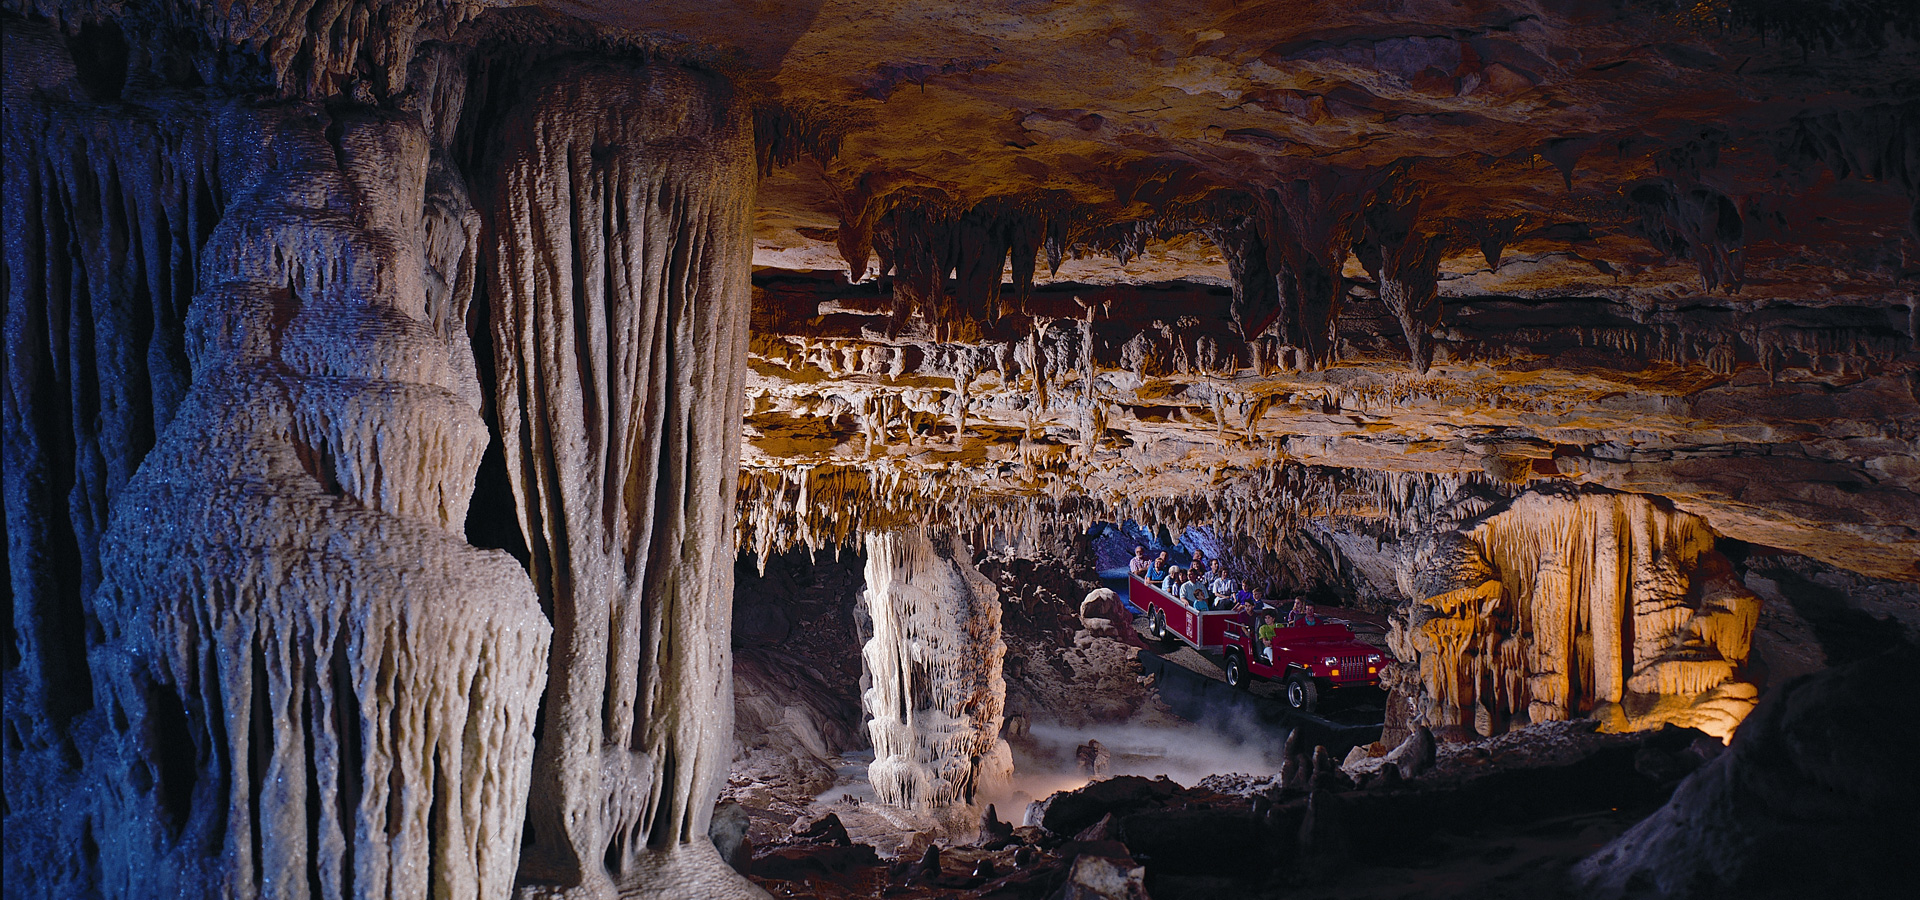 Fantastic Caverns cave is a ride-thru cave attraction for Branson, Mo and Springfield, Mo